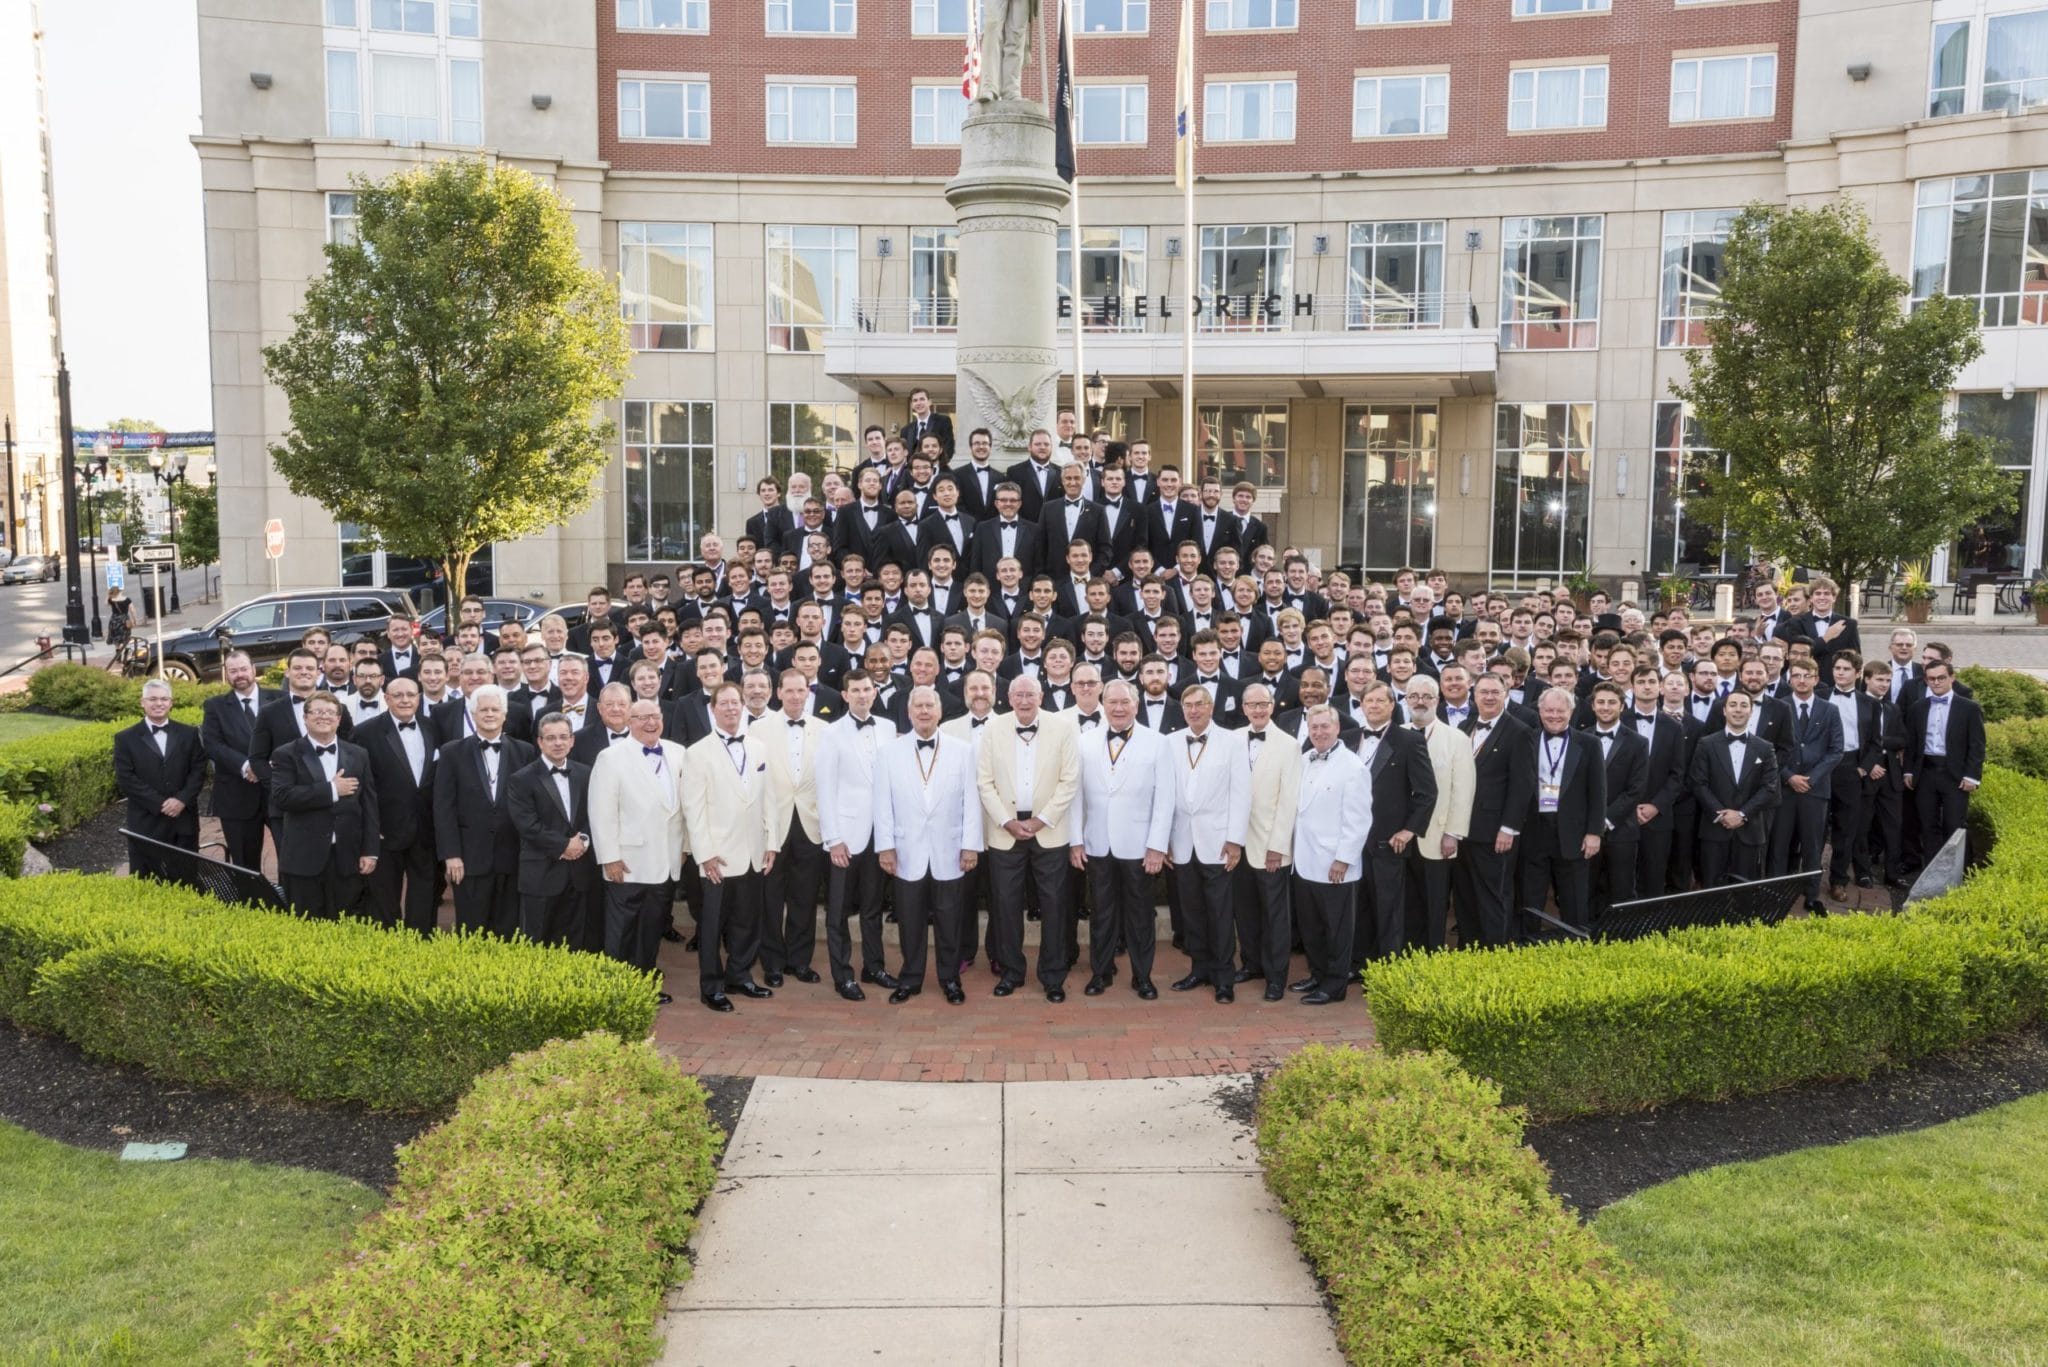 Chi Psi members at a convention